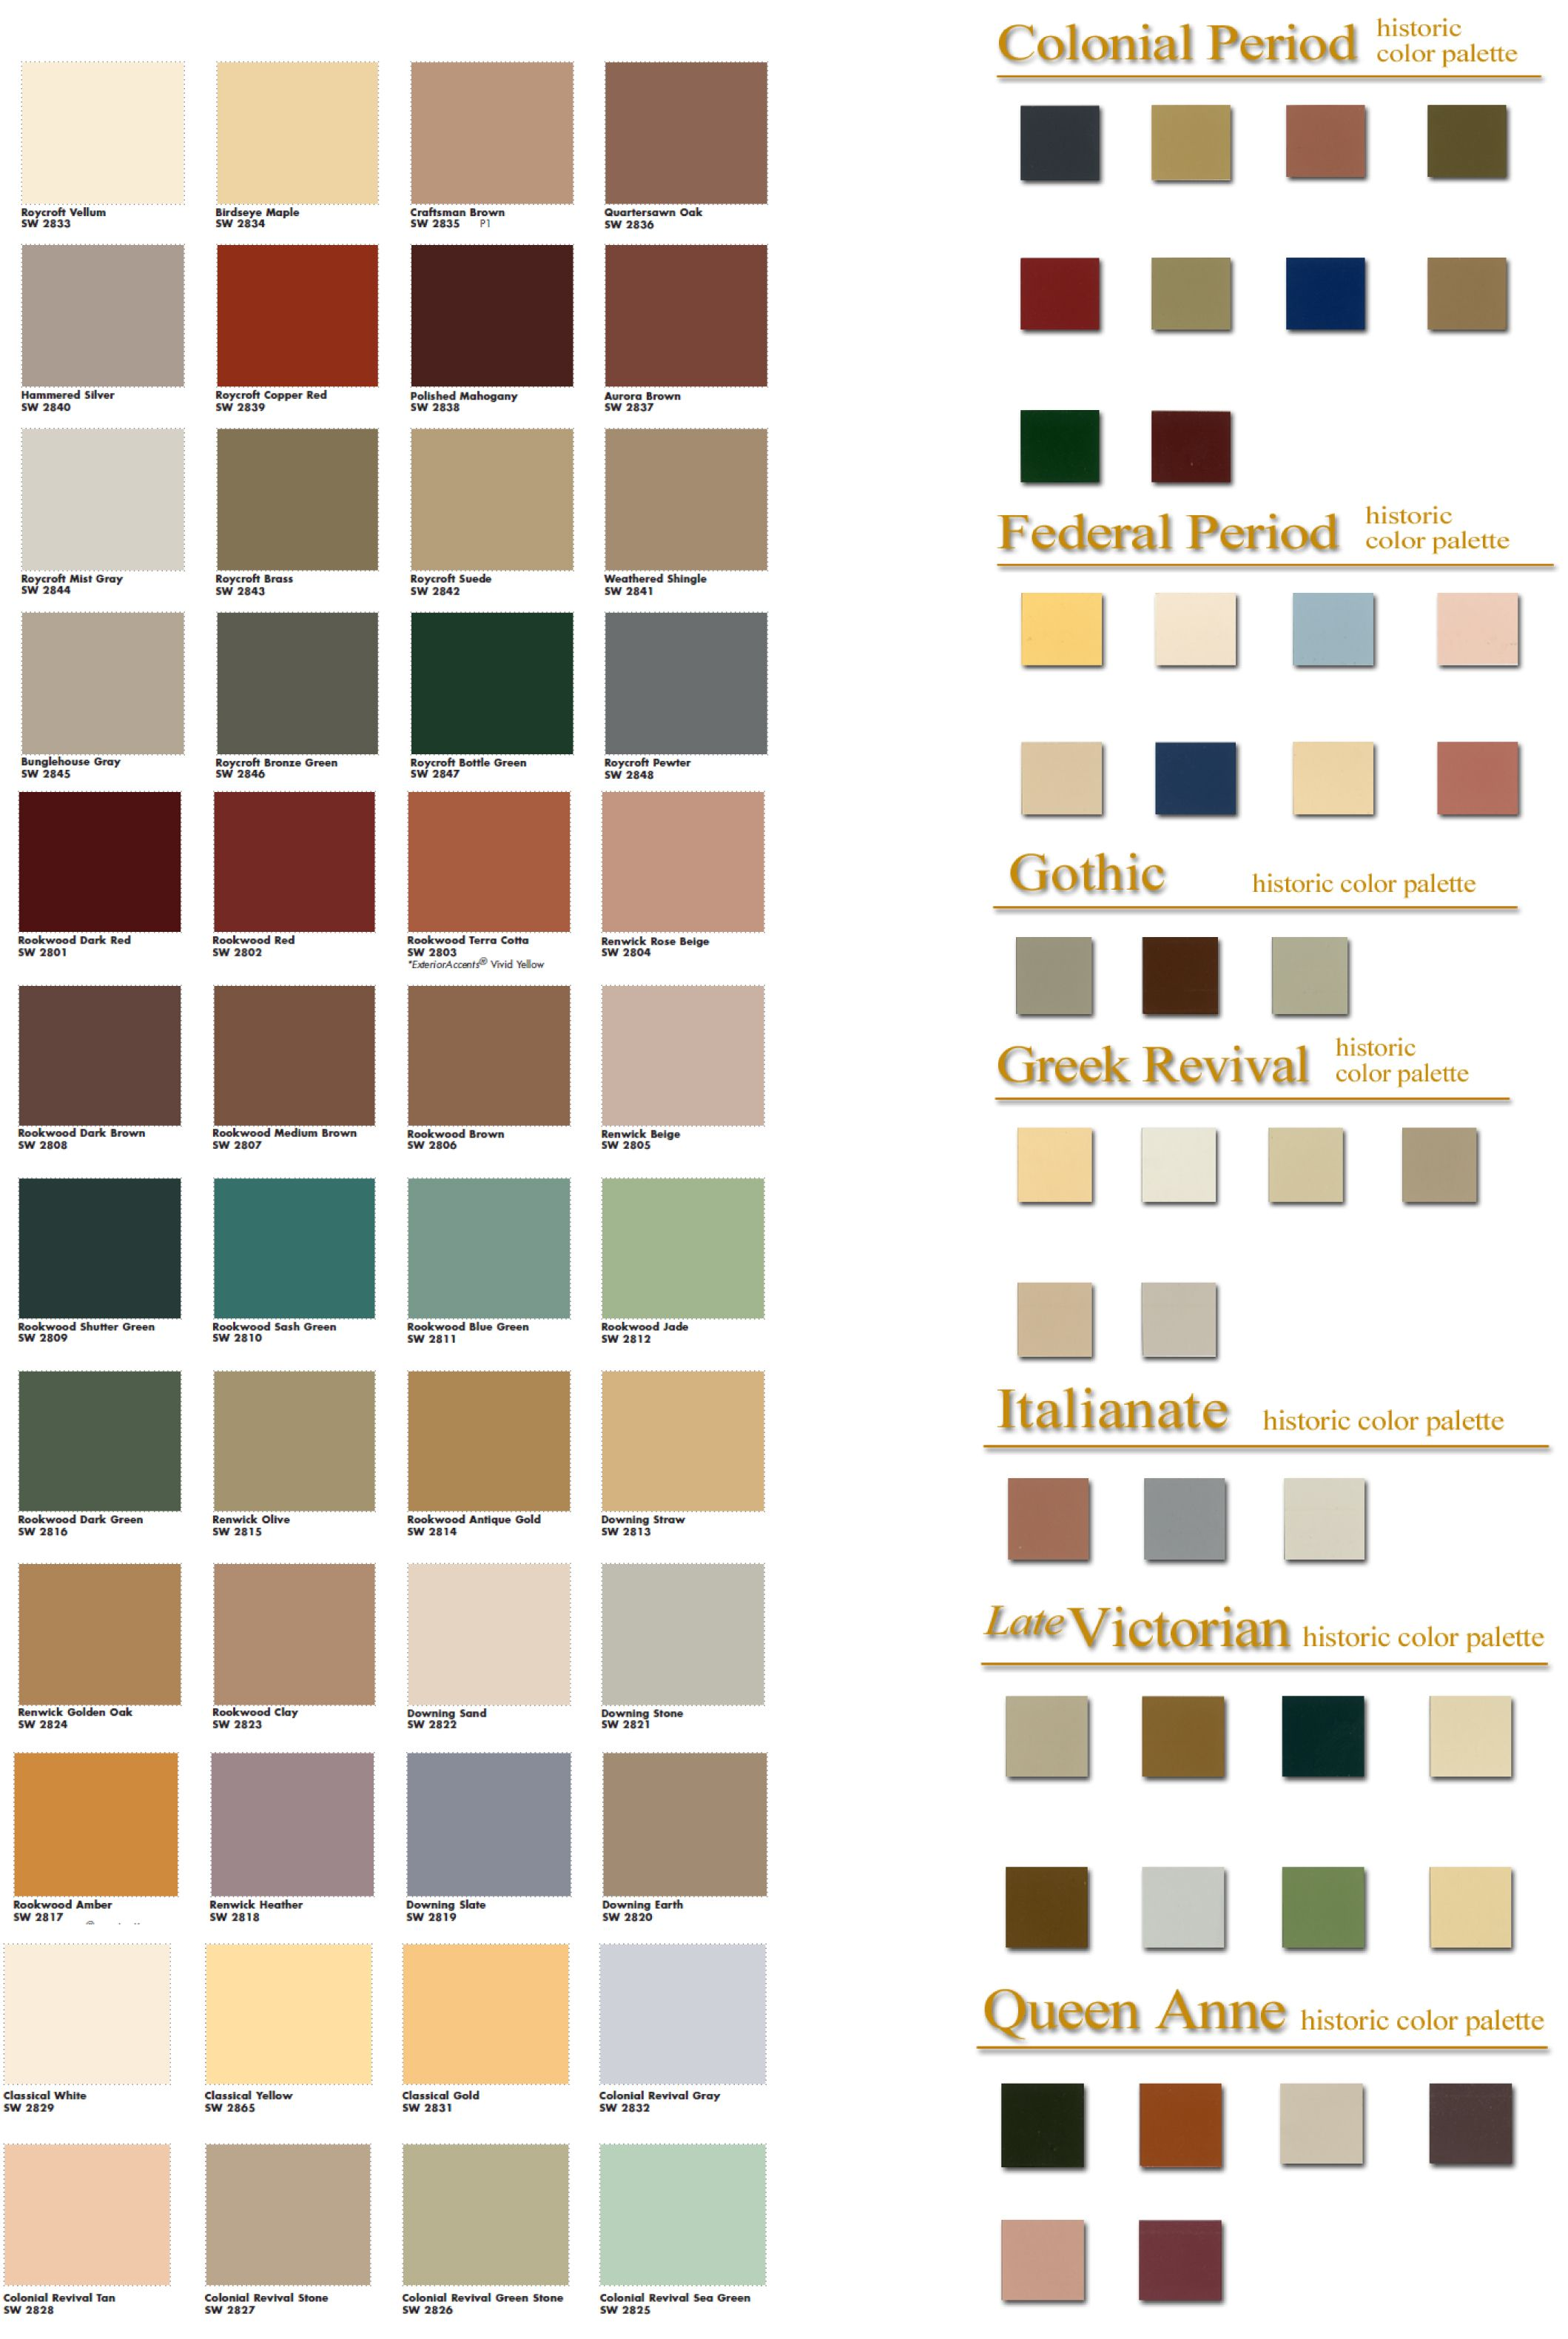 Historiccolorpalette Jpg 2119 3160 Fayetteville Ny Periods